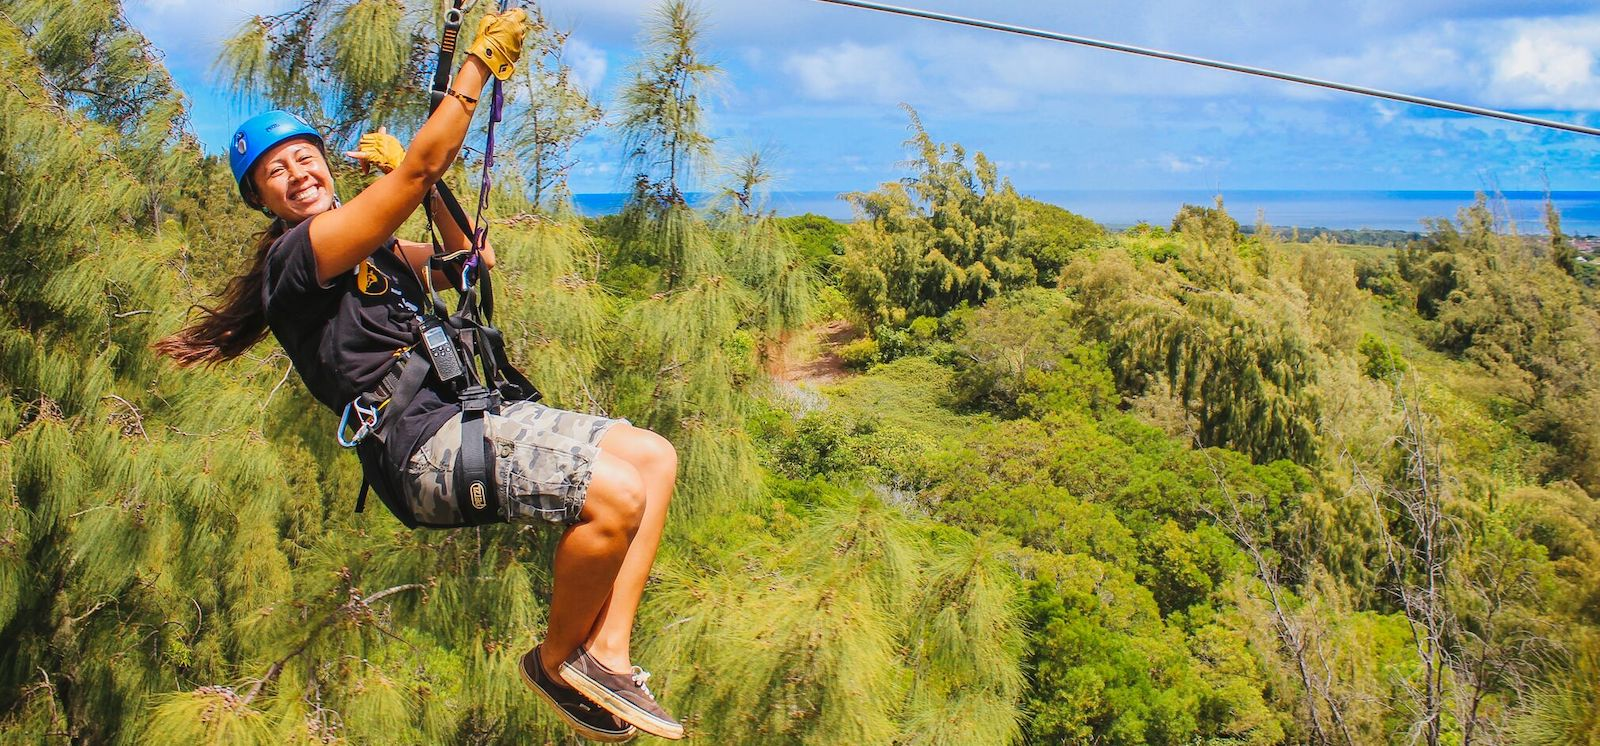 Top 4 Reasons Why Guests Visiting Waikiki Love Our Oahu Zipline Tour